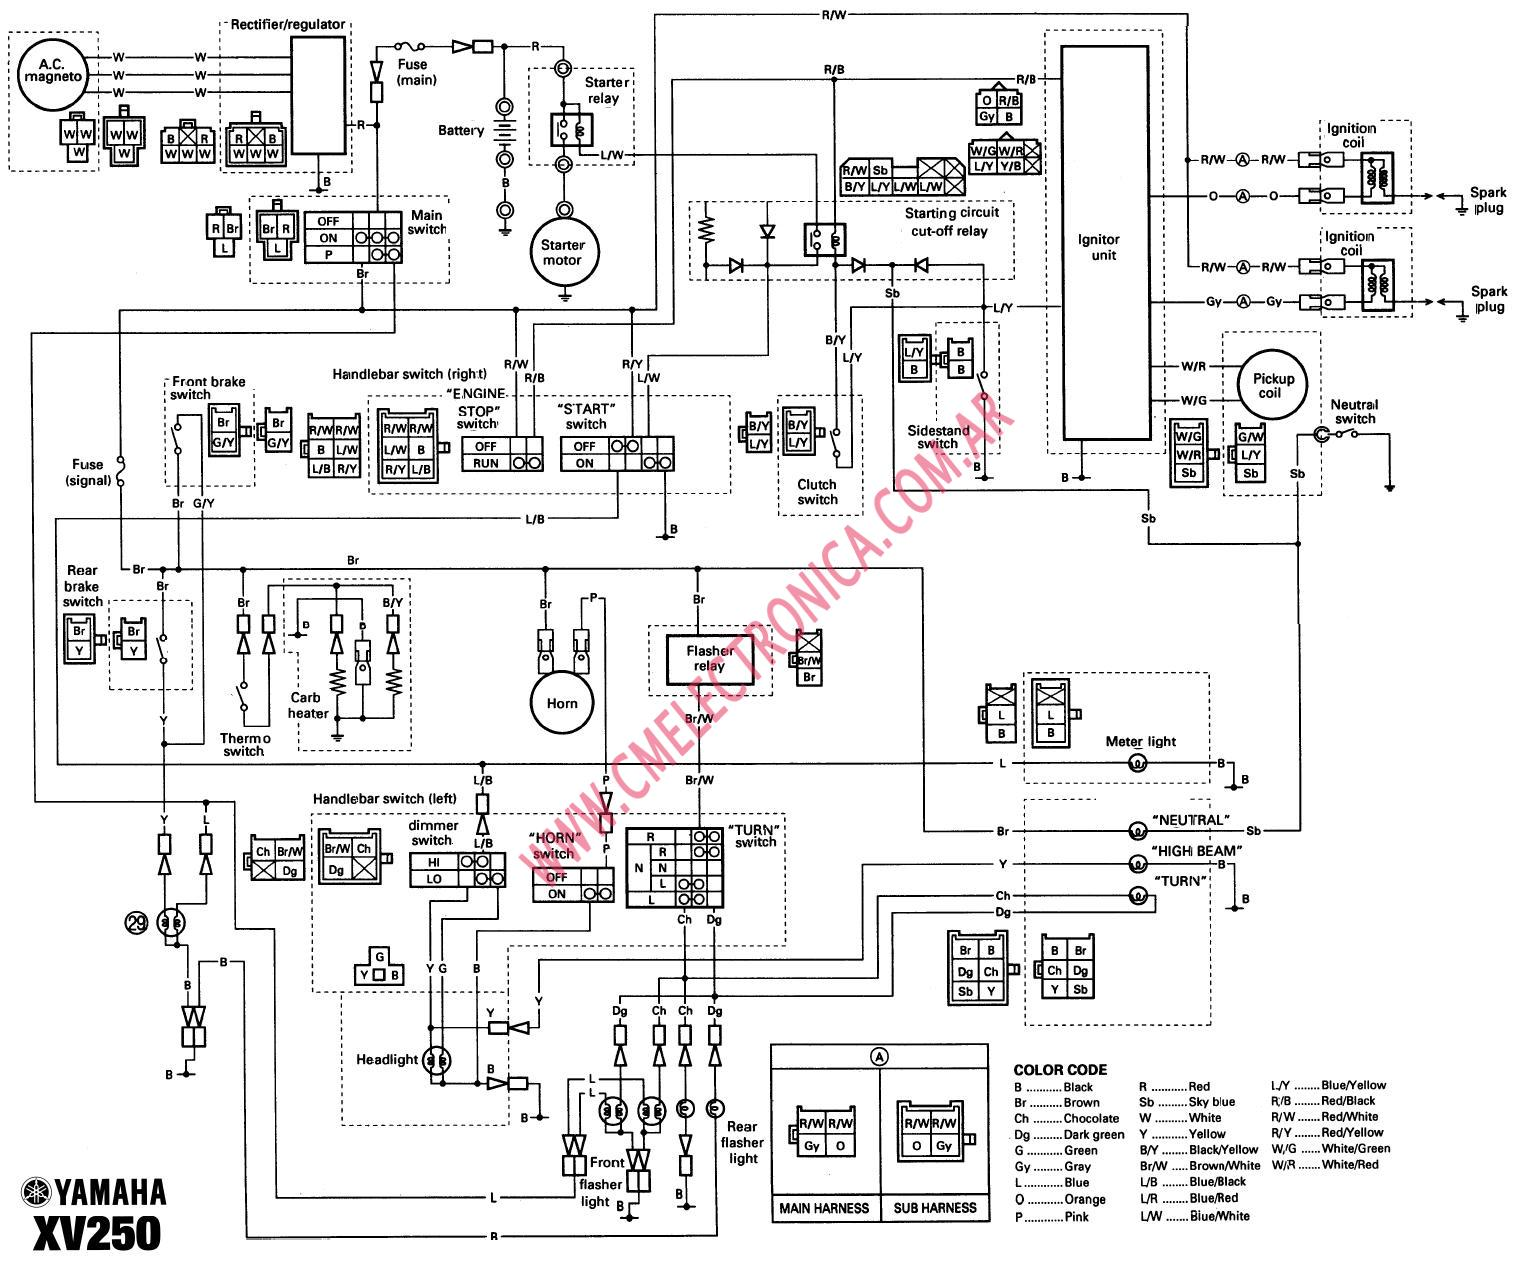 Painless Lt1 Wiring Conversion By Schematics Data Diagrams Tpi Swap Tbi To Diagram Get Free Image About Harness